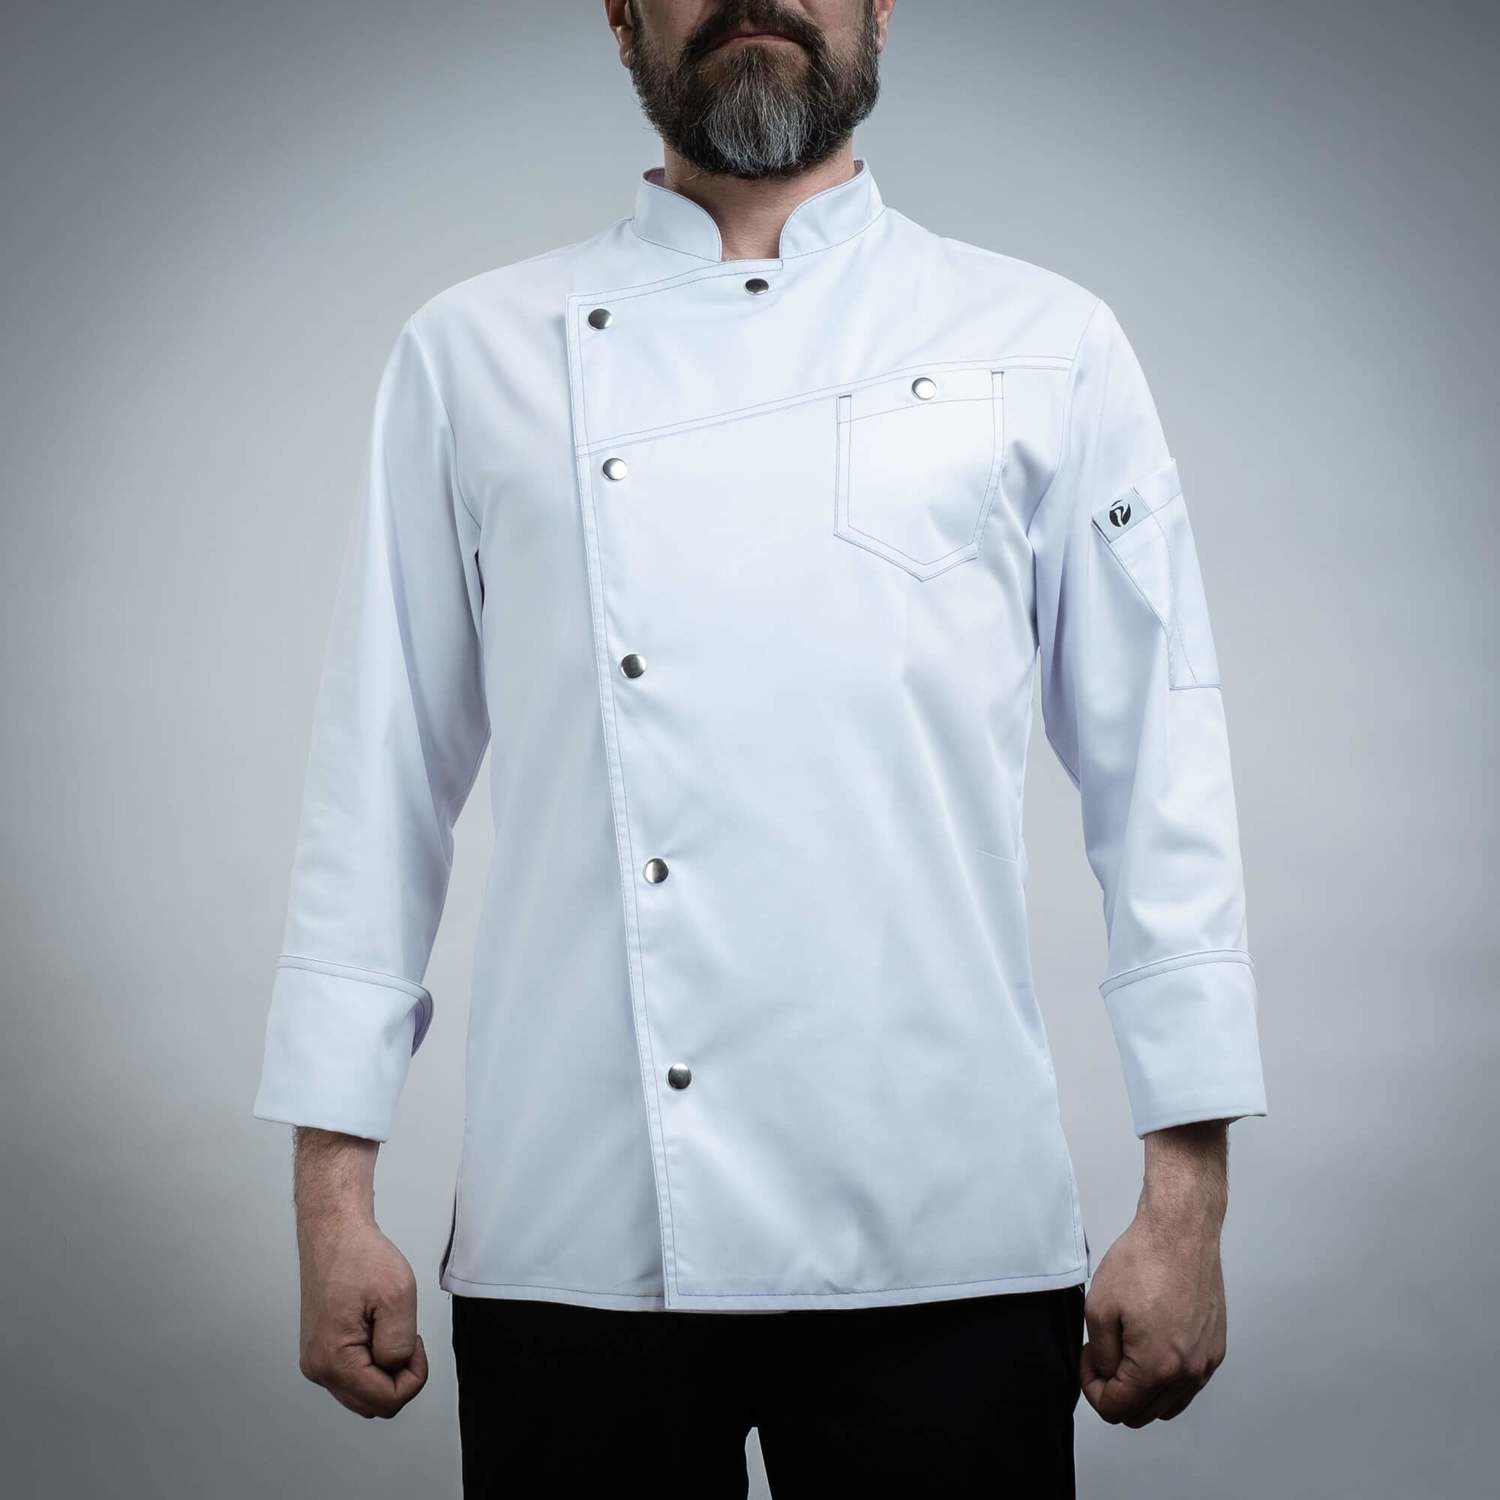 140WHITE2 - CHEF'S JACKET